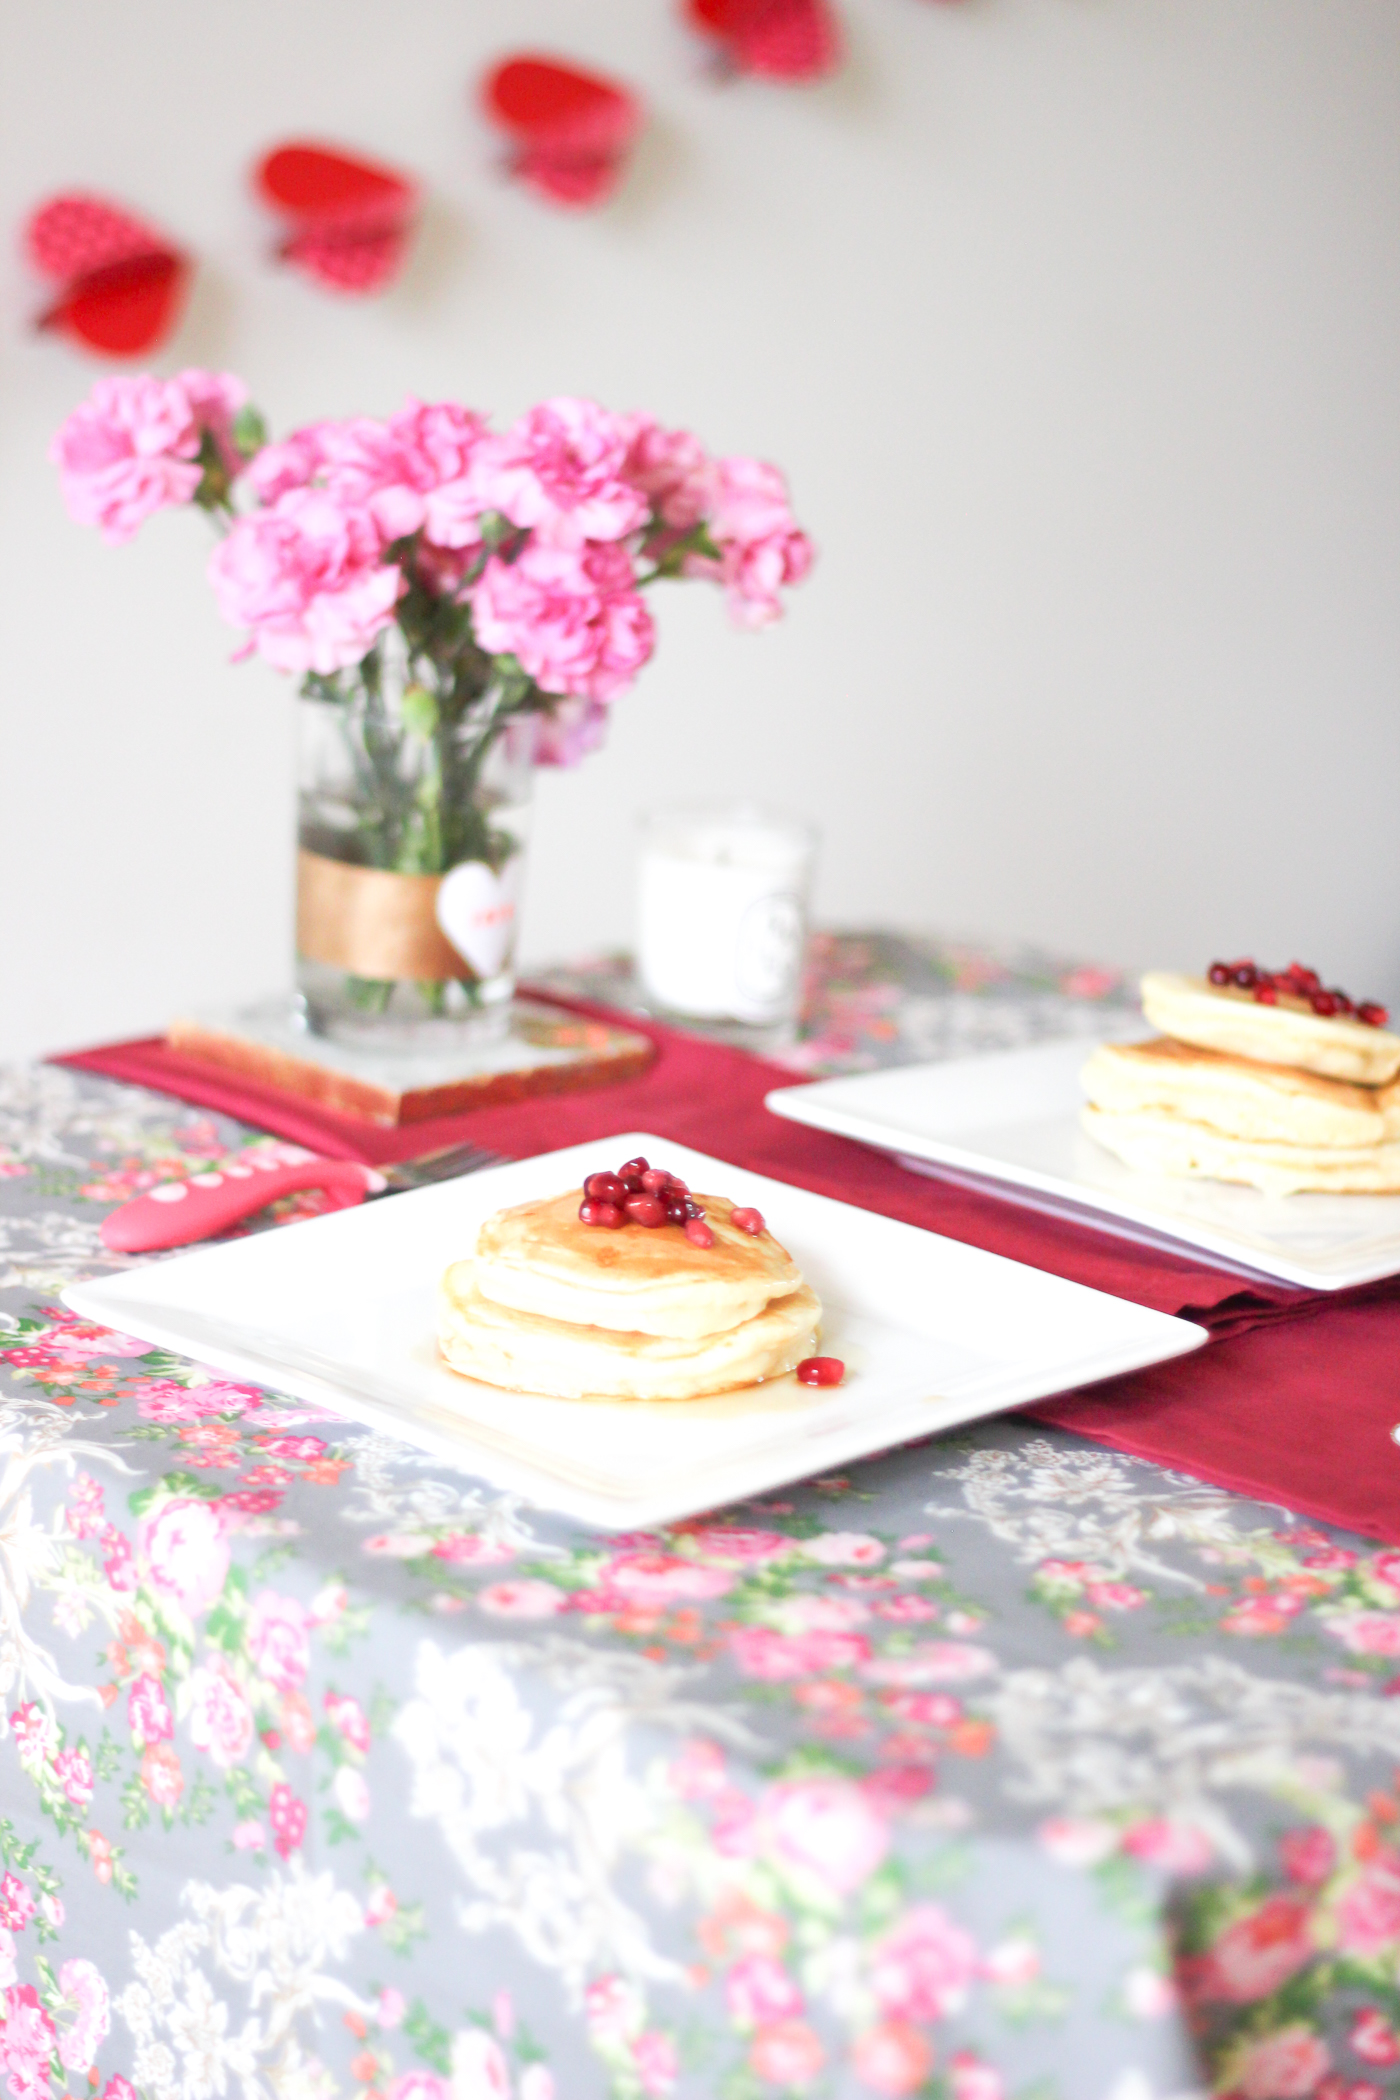 On the menu: Pancakes with a little maple syrup and Taylor's favorite, pomegranates. If you look at Taylor's face, she was clearly happy with this little spread!